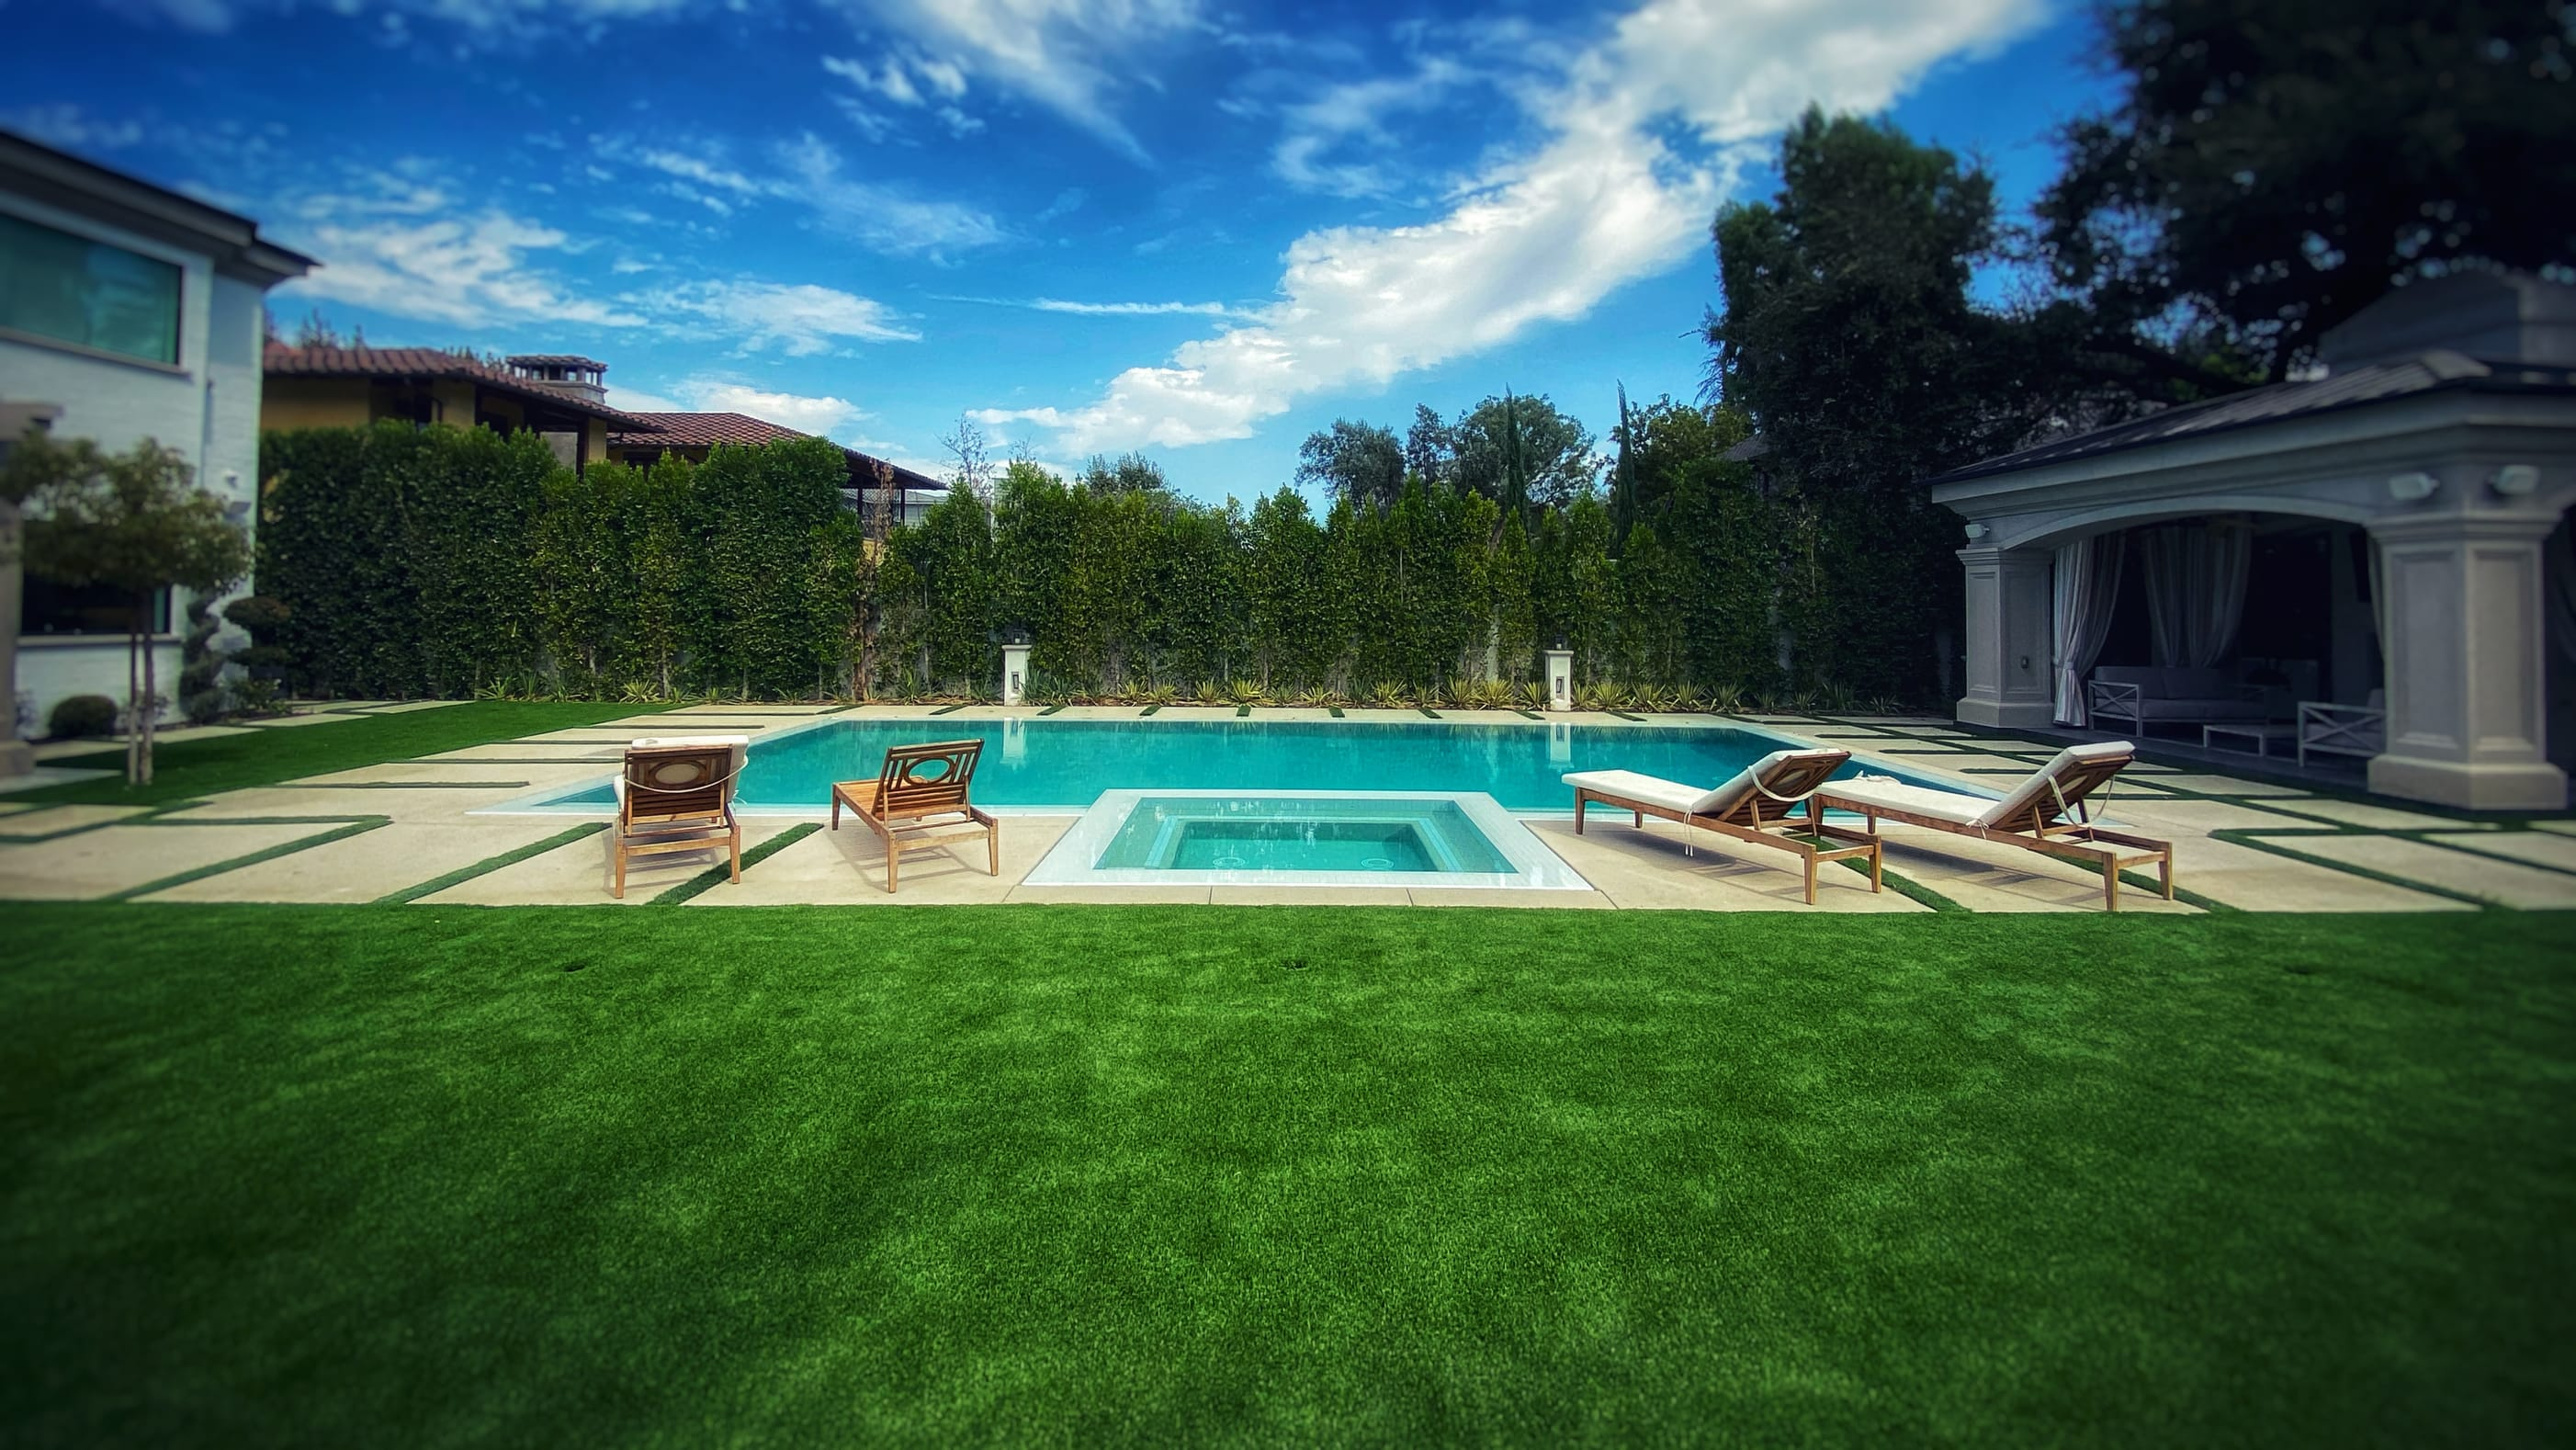 synthetic turf near pool